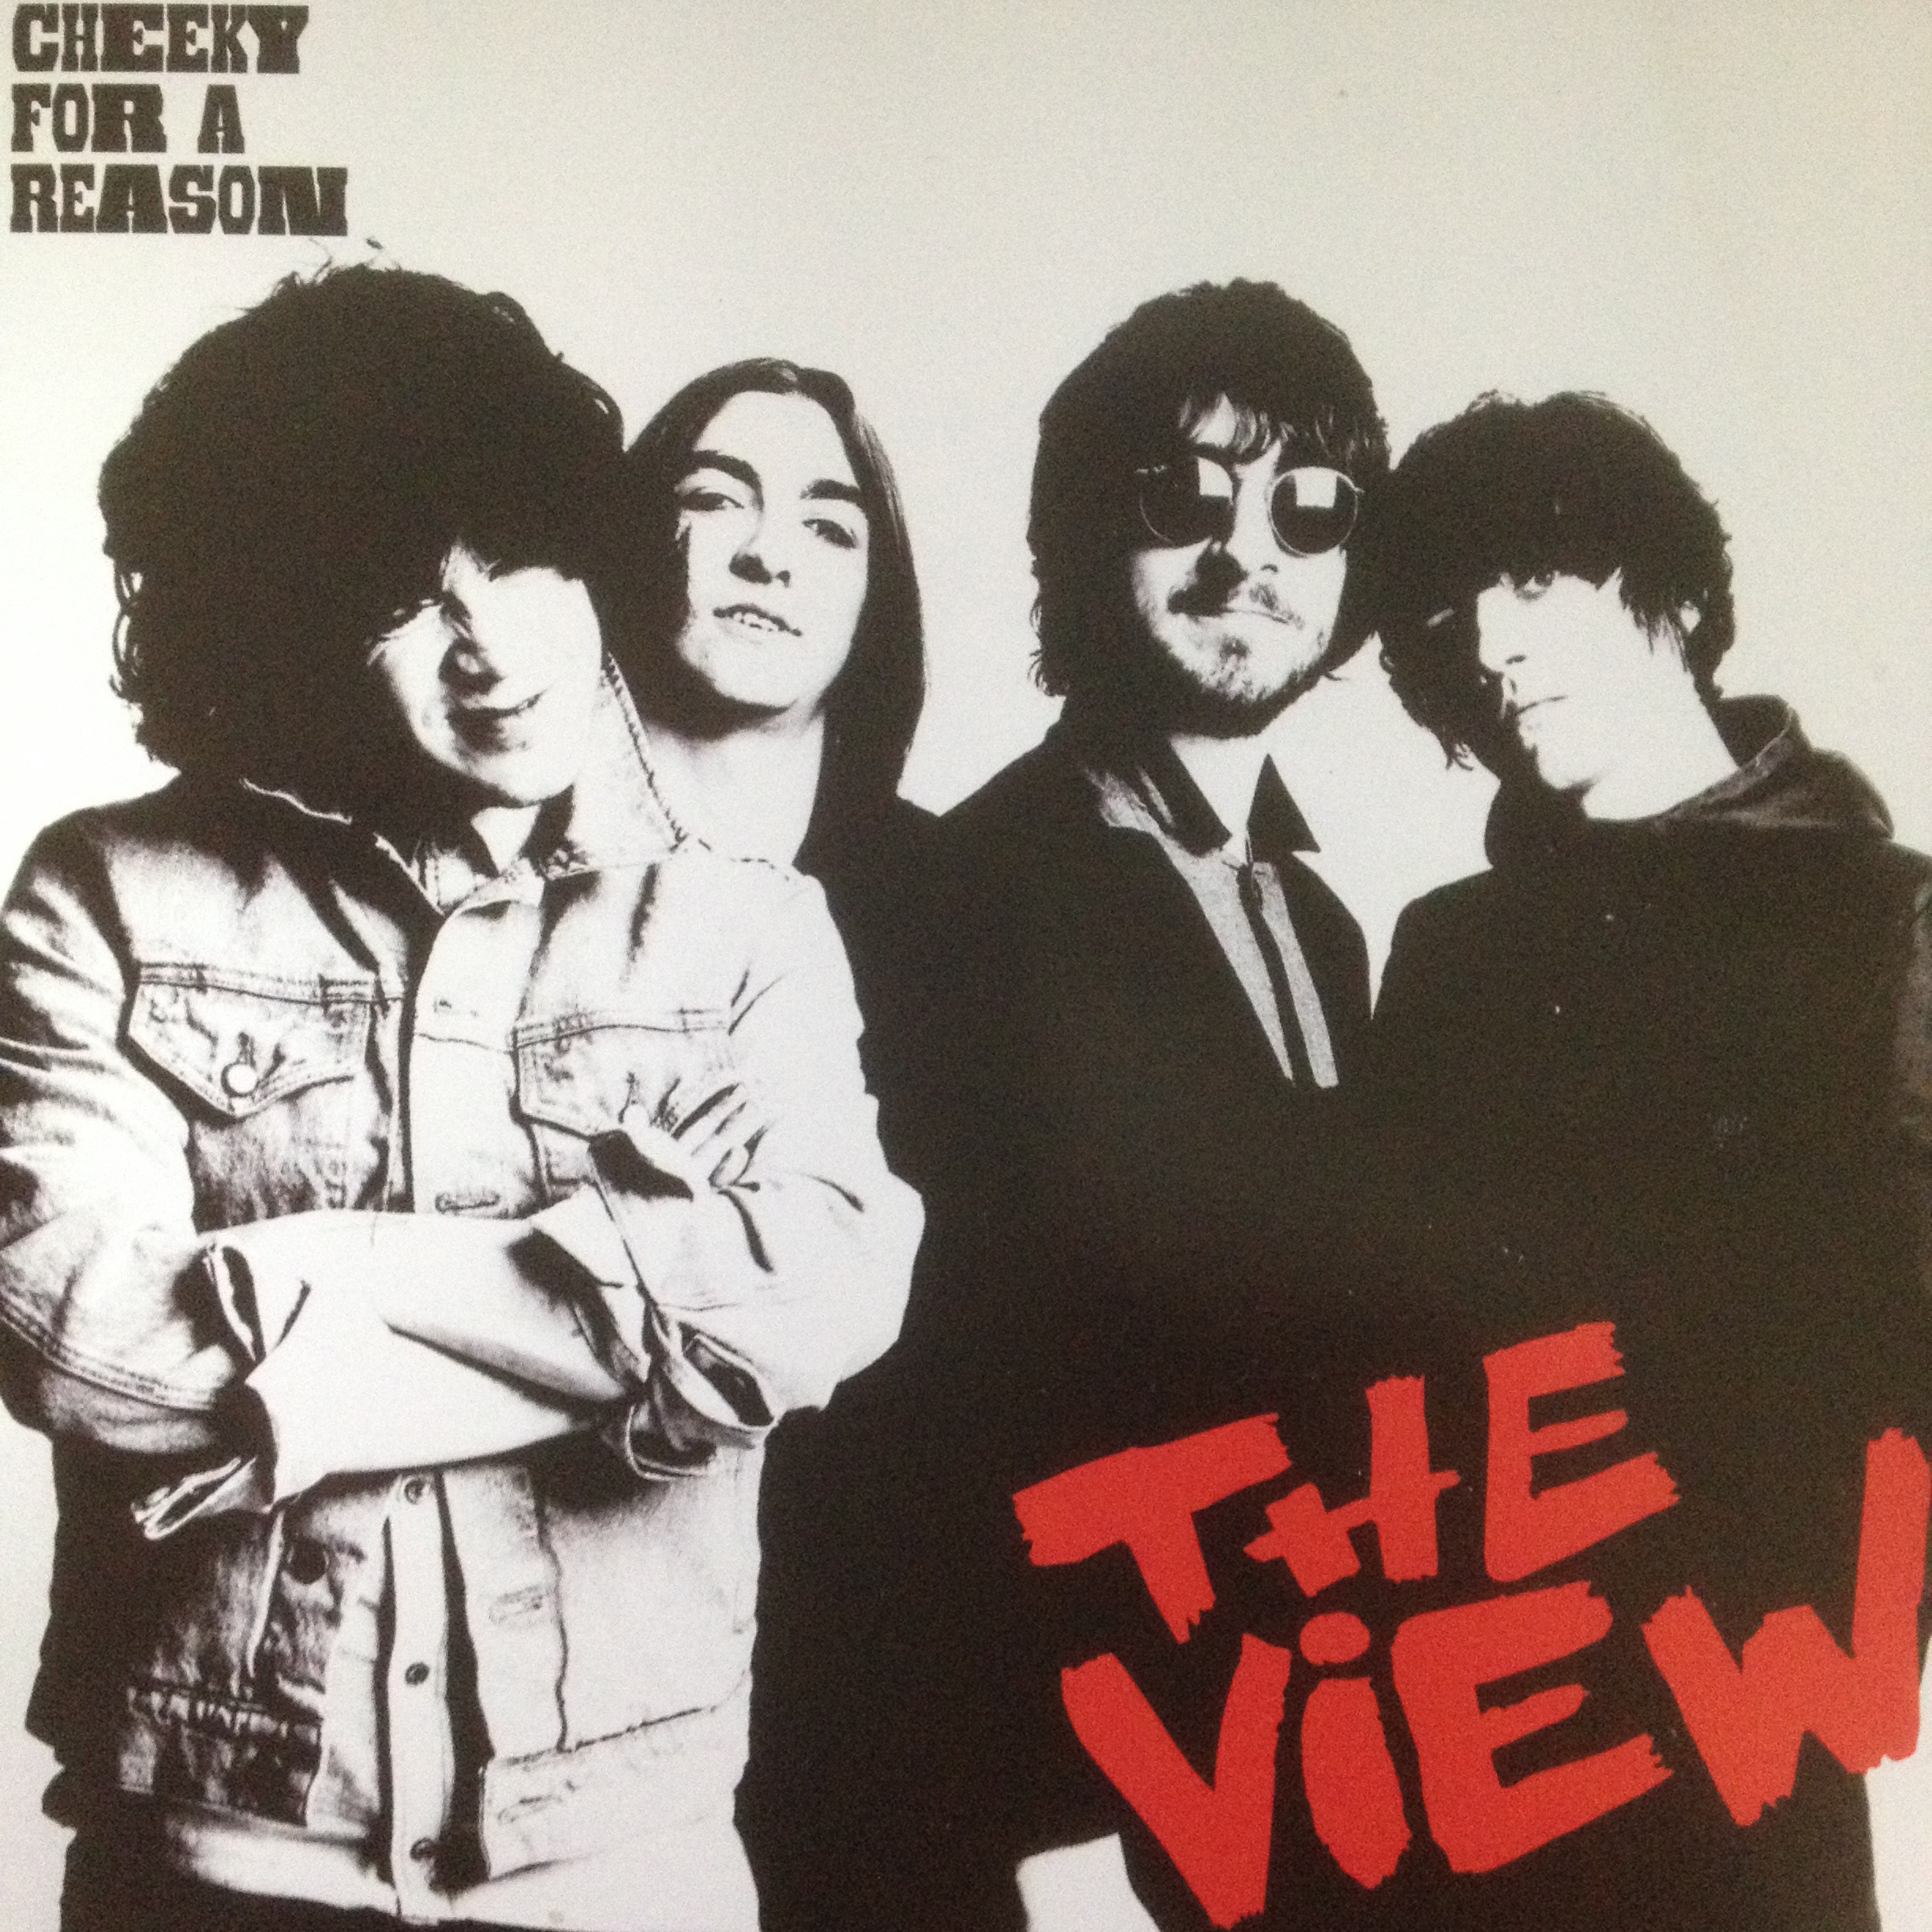 The View 「HOW LONG」